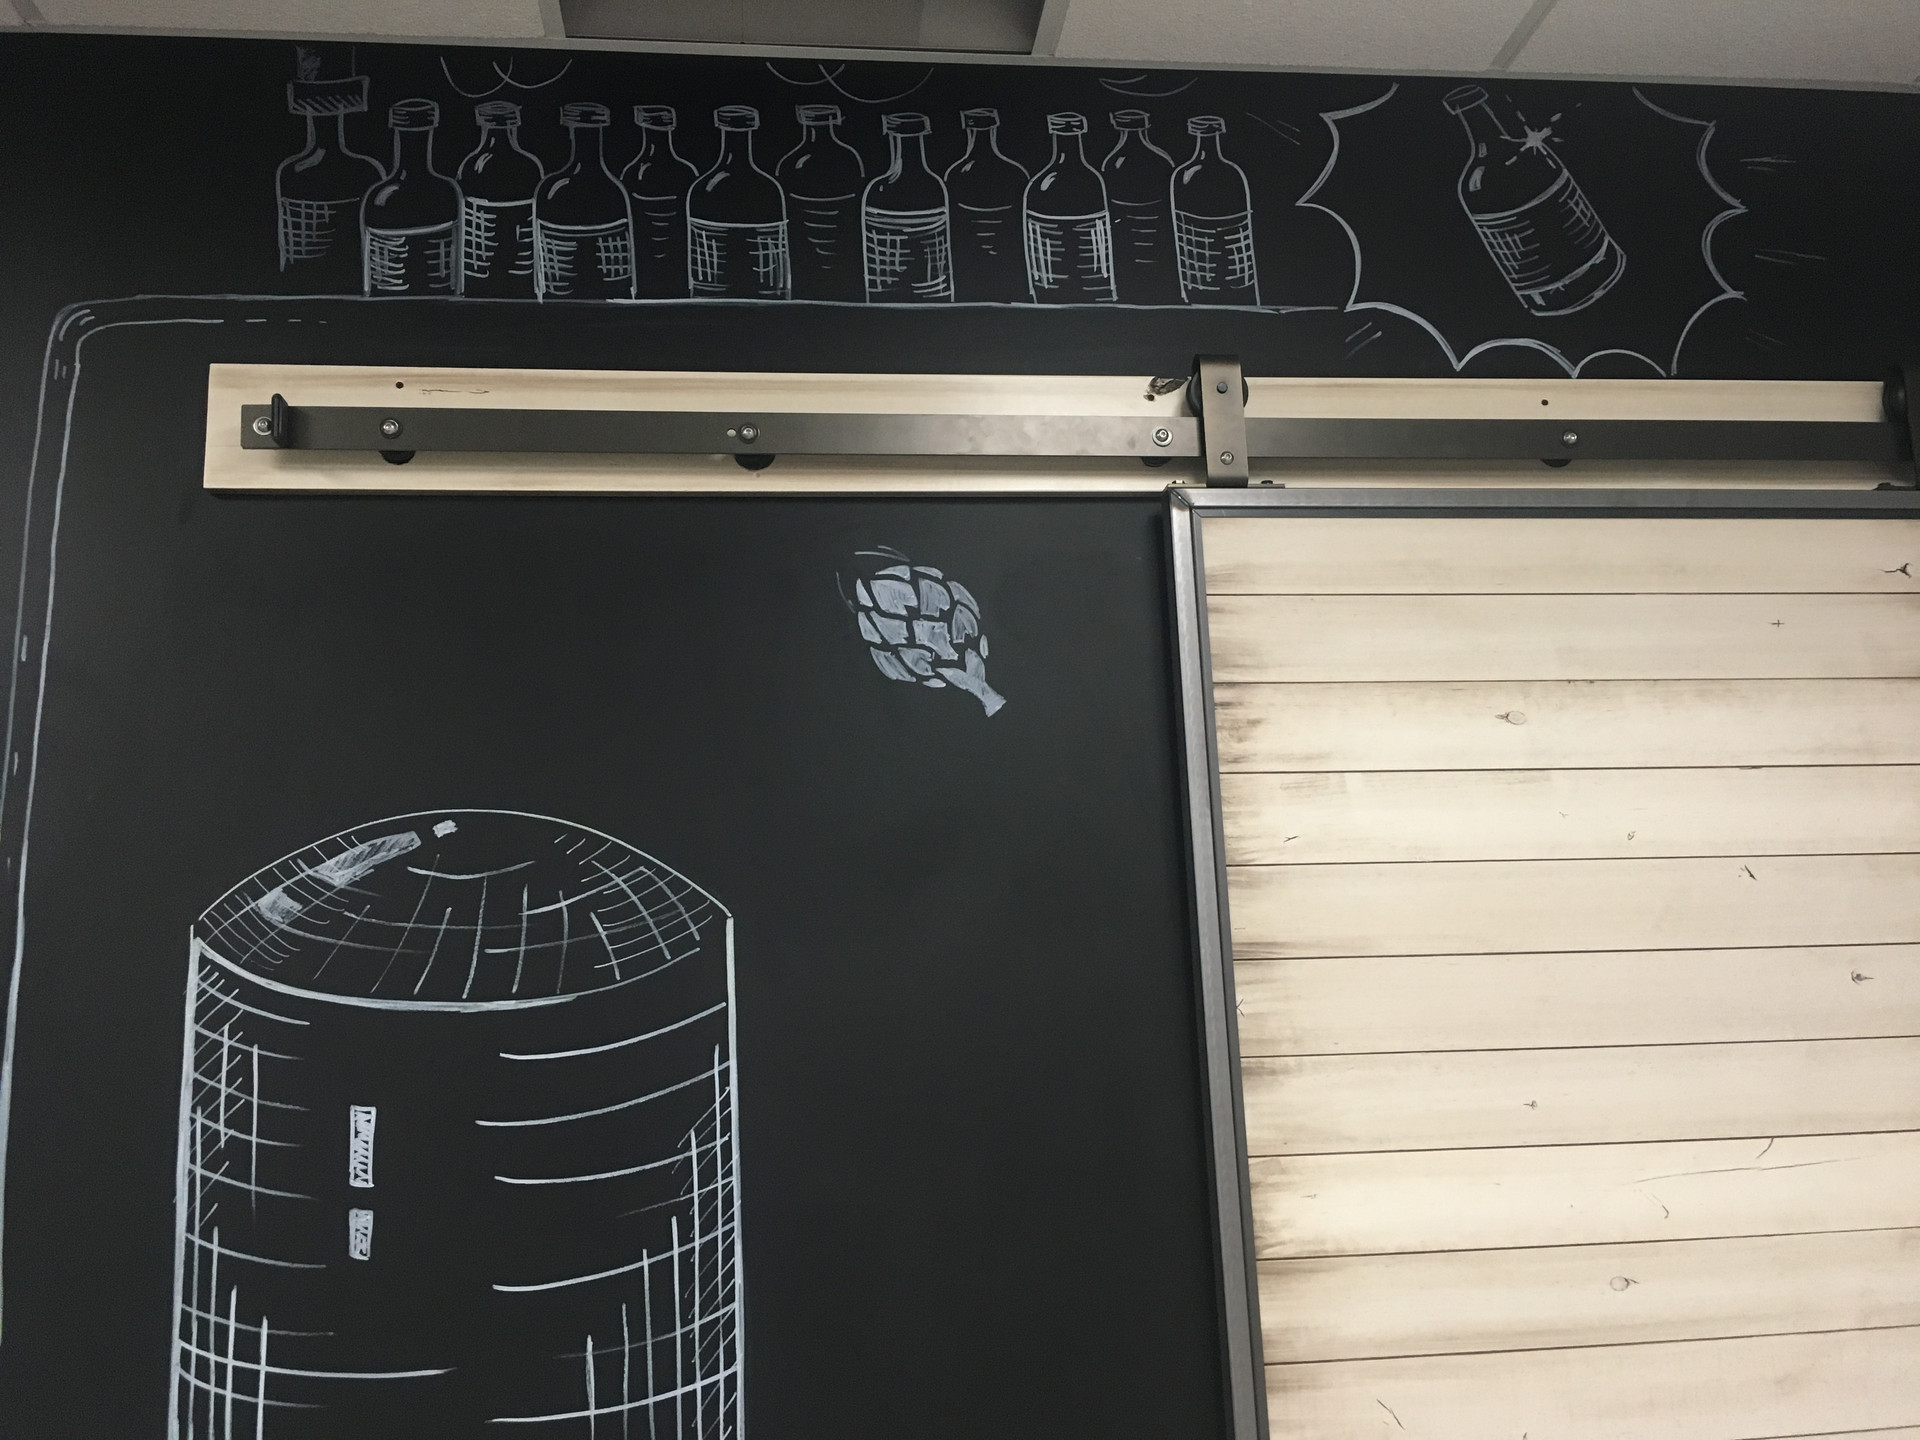 end of beer brew process chakboard wall mural by cathryn bozone for anheuserbusch